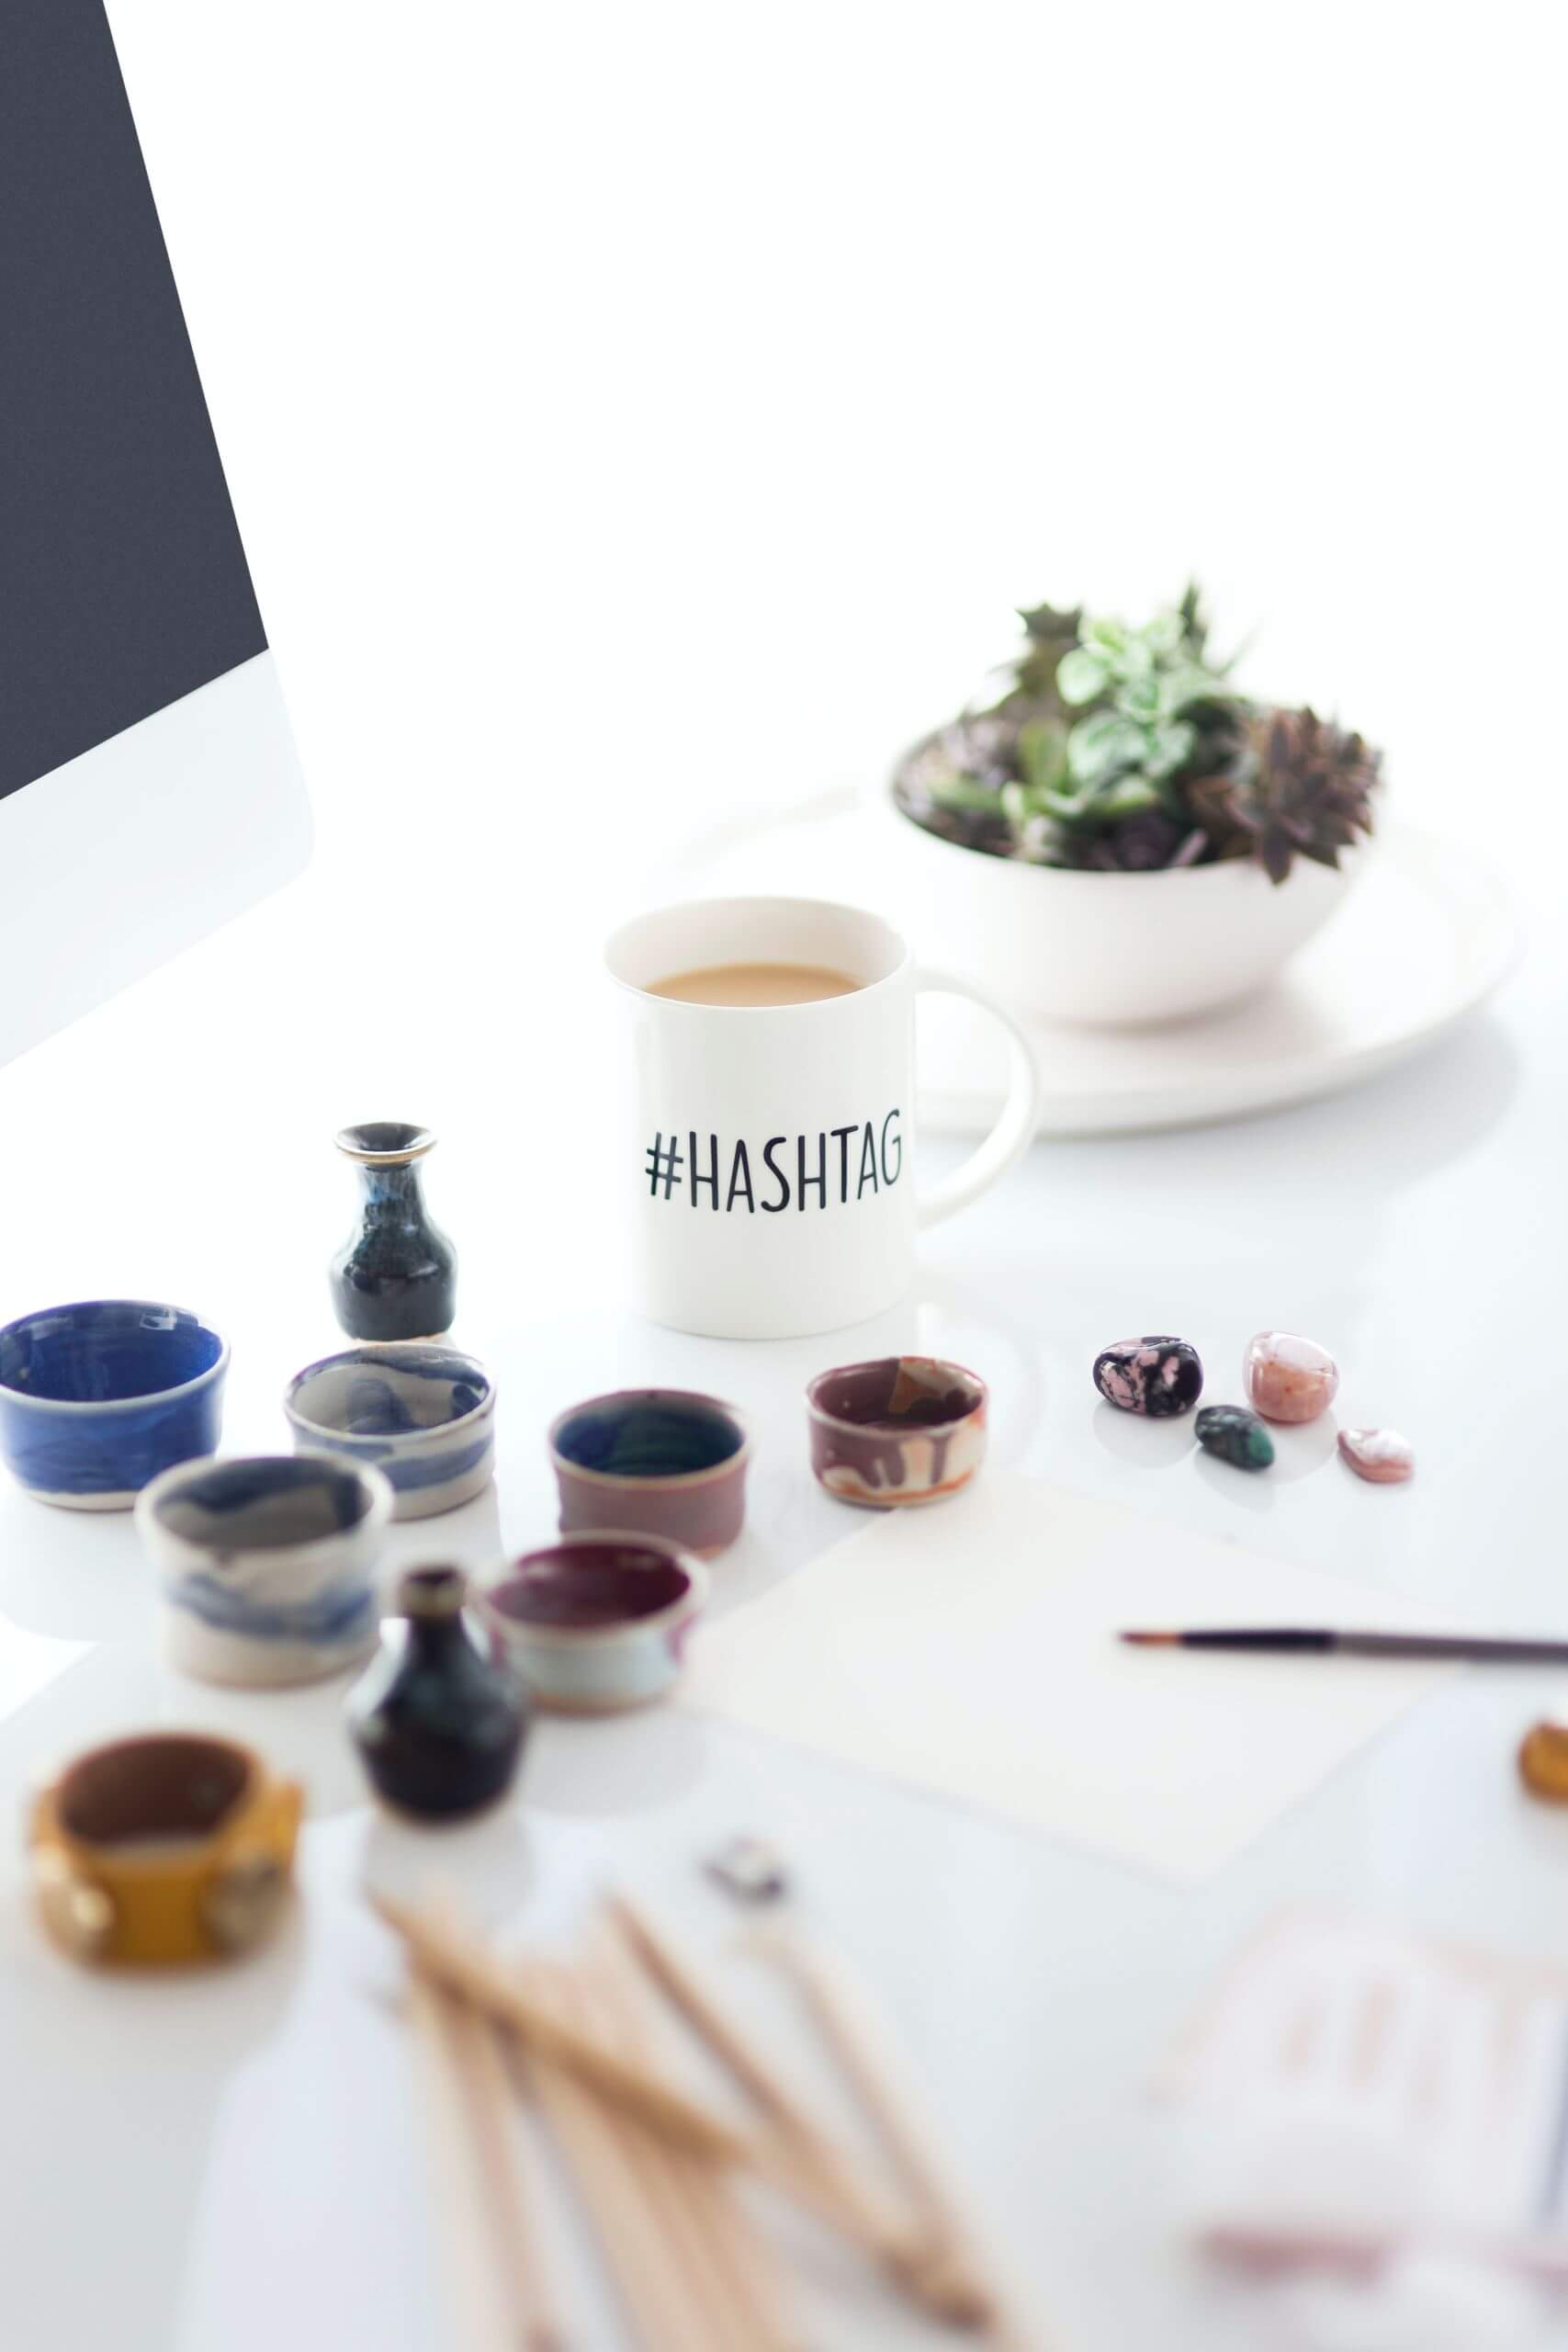 How Hashtags Can Help Promote Your Business written by Amelia Dean.